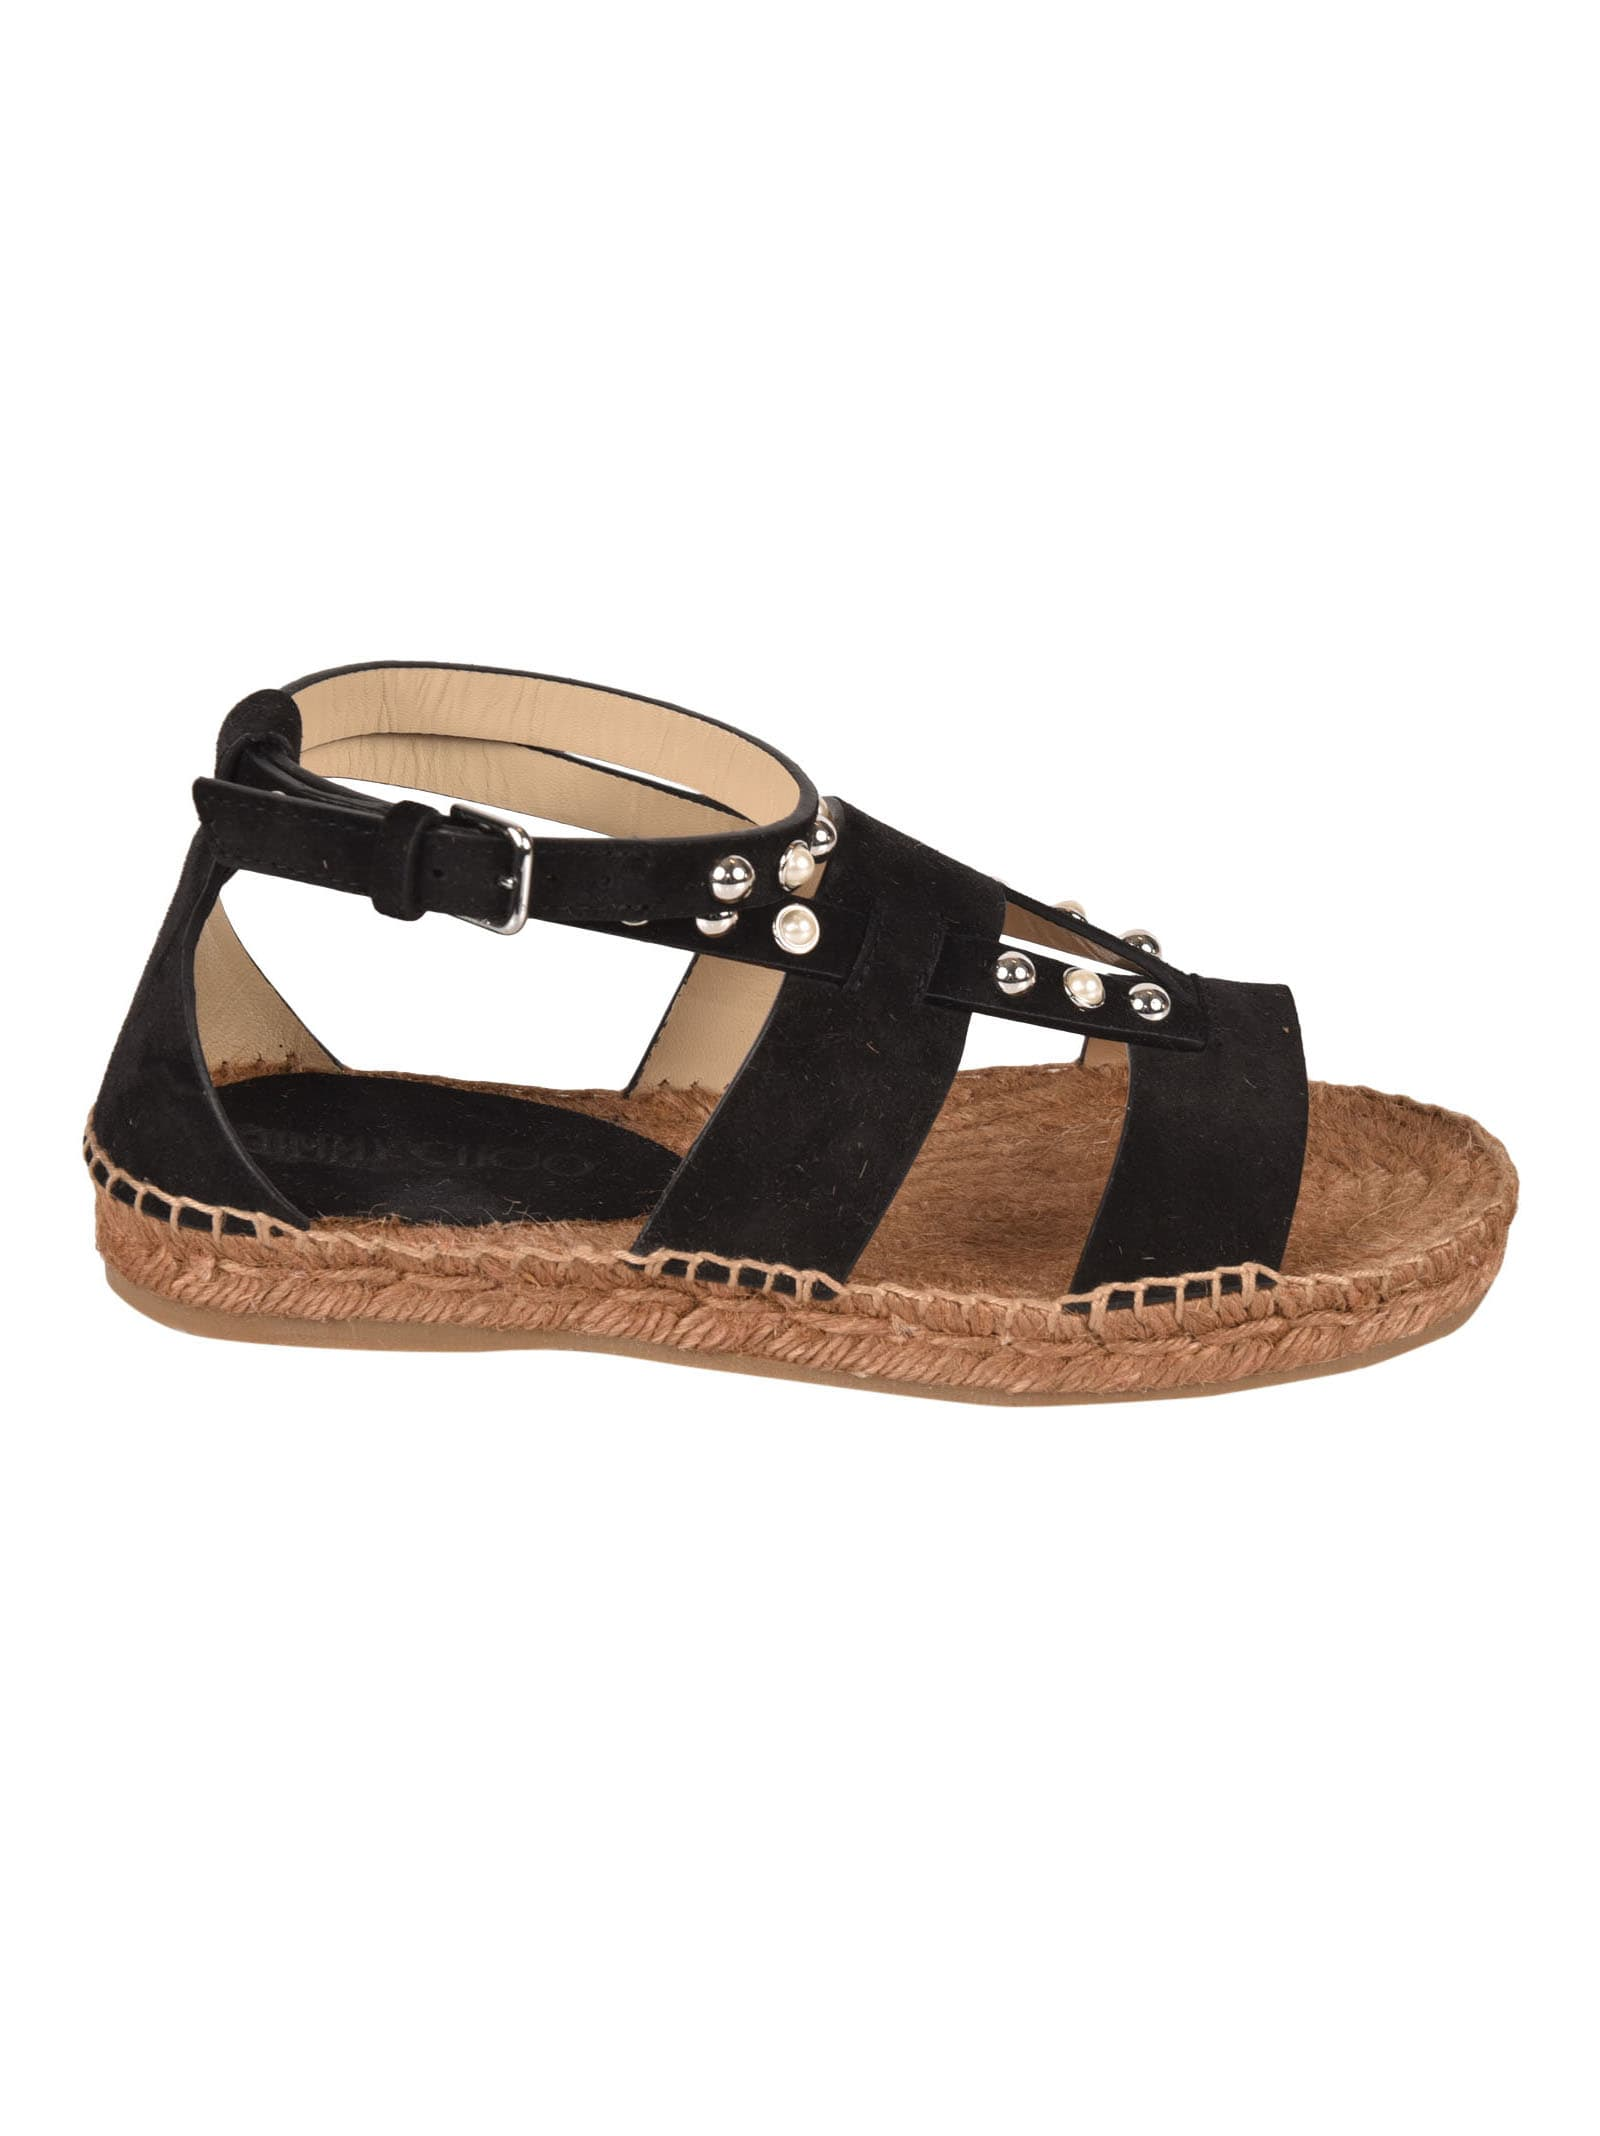 Buy Jimmy Choo Denise Flat Sandals online, shop Jimmy Choo shoes with free shipping